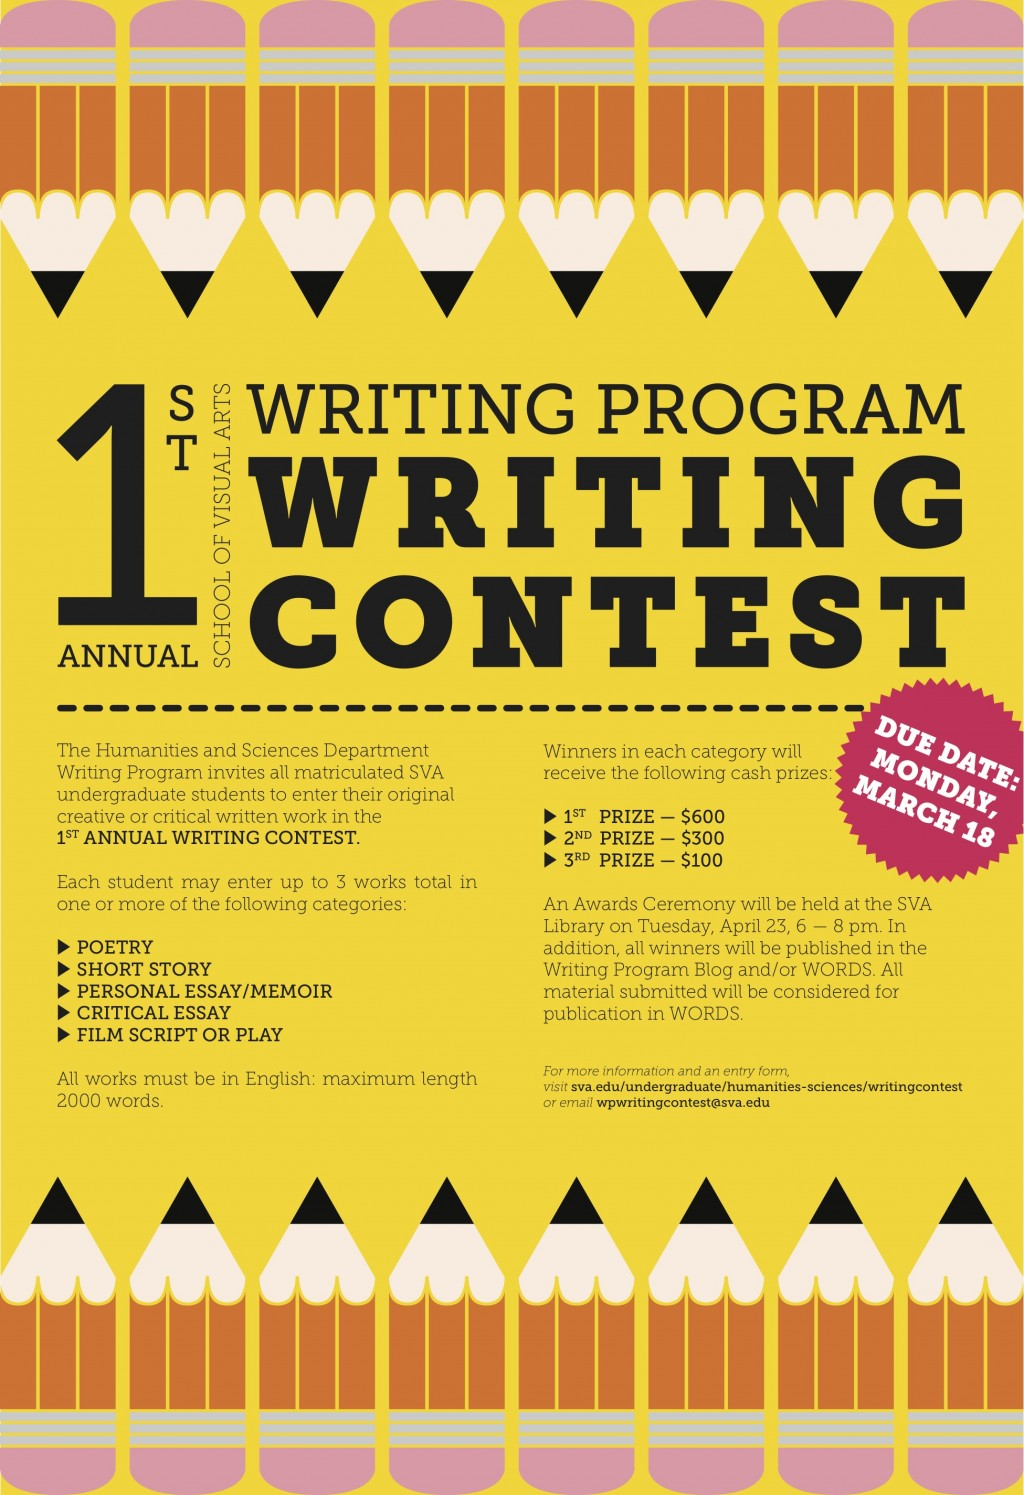 010 Essay Writing Blog 1st Annual Sva Program Contest Criteria Objectives Rubrics Tips Philippines For Nutrition Month Guidelines Mechanics Incredible Competition College Students By Essayhub Sample Large